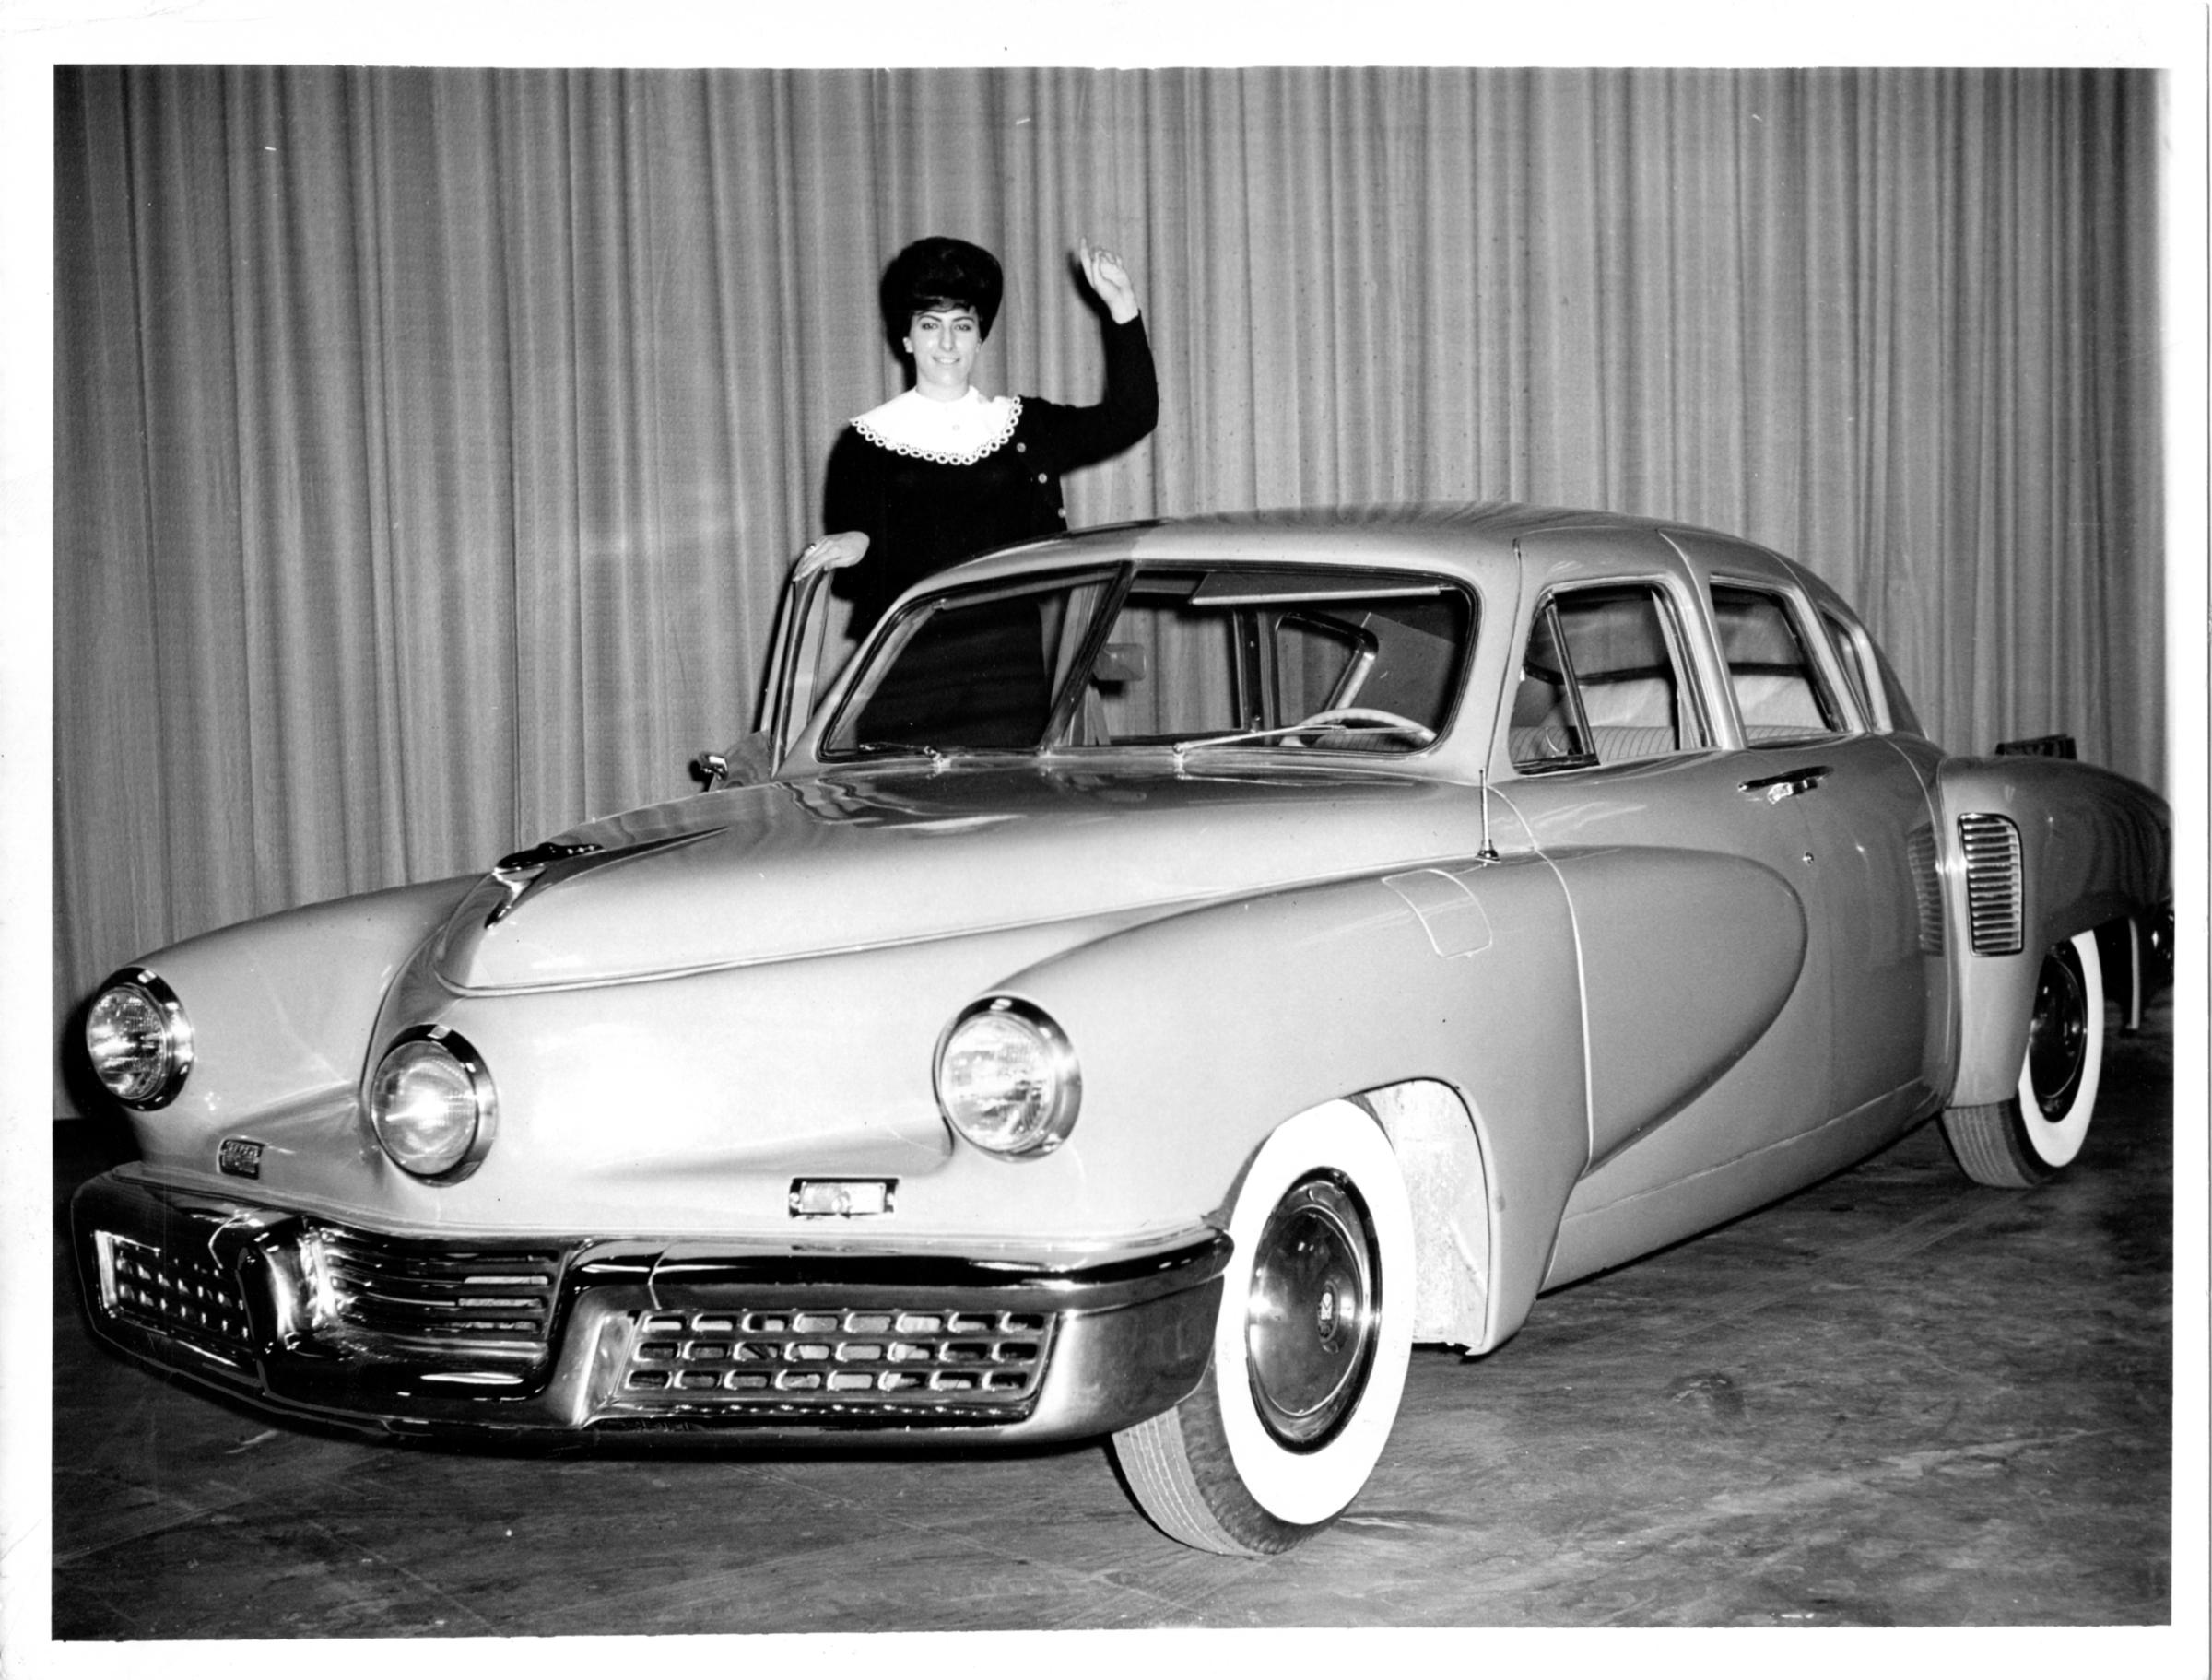 A 1948 Tucker Sedan On Display At Mccormick Place In Chicago 1962